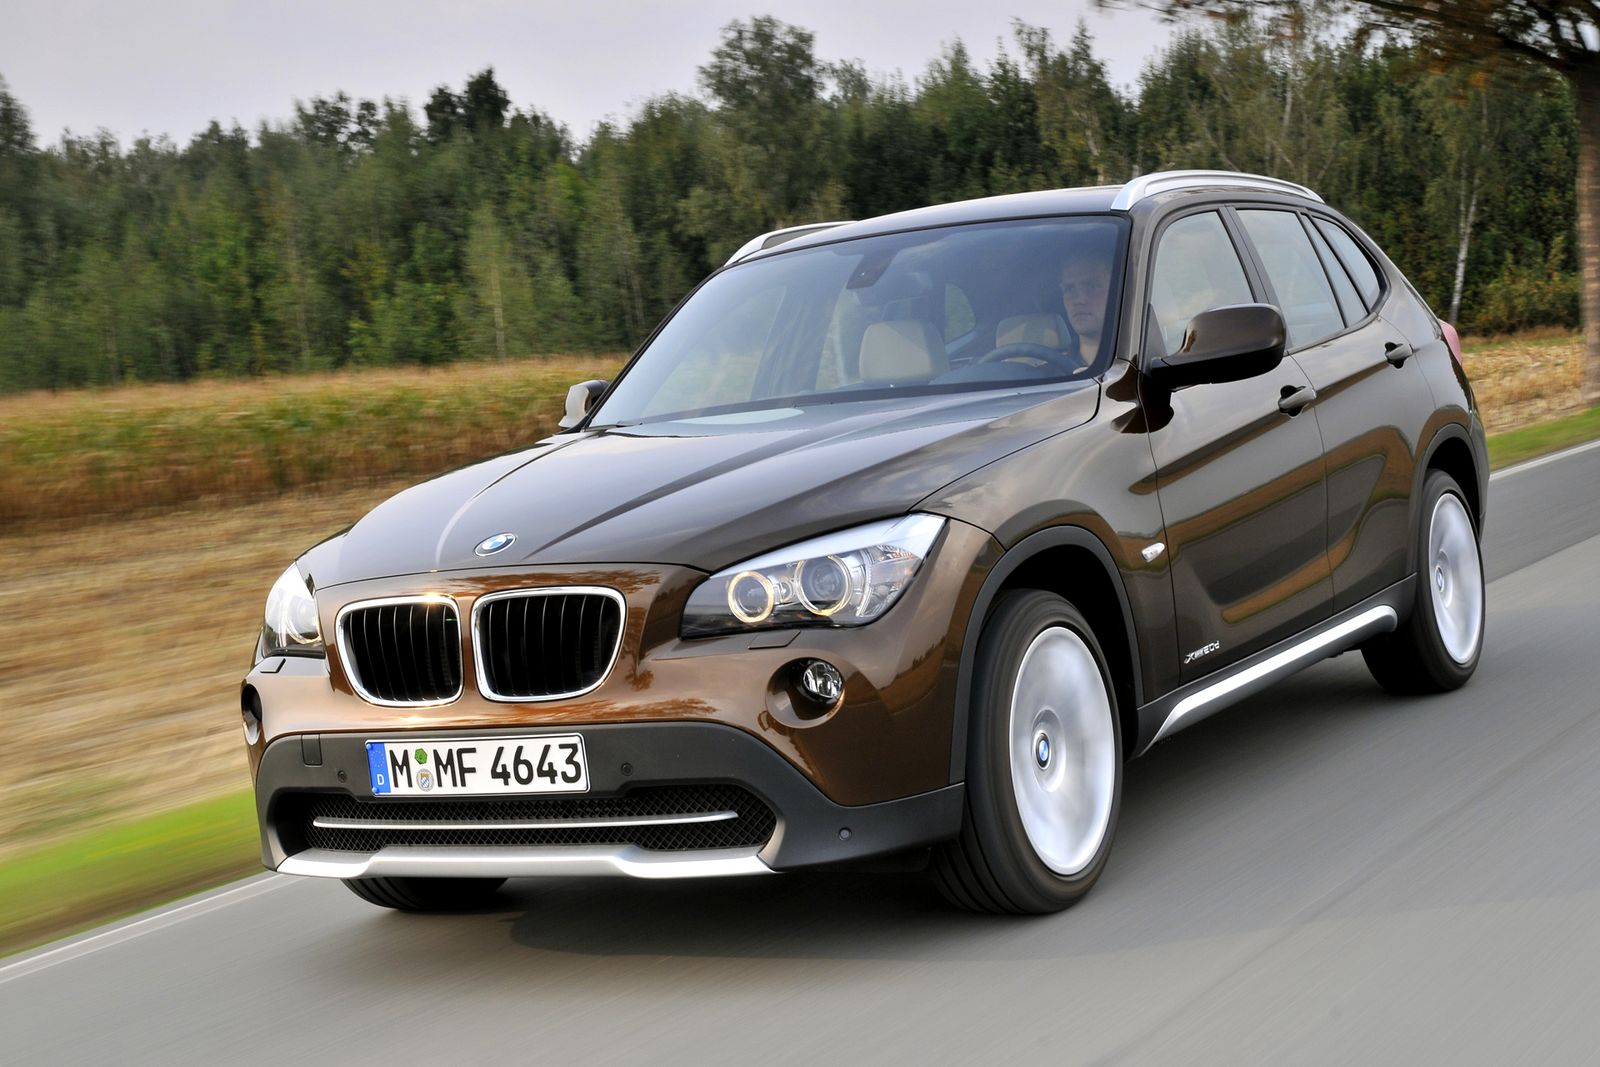 The Exclusivity Of BMW X1 Confirmed By Numerous National And International  Awards, Awarded By The Small Sized SUV For The BMW X Design, Dynamic  Performance ...